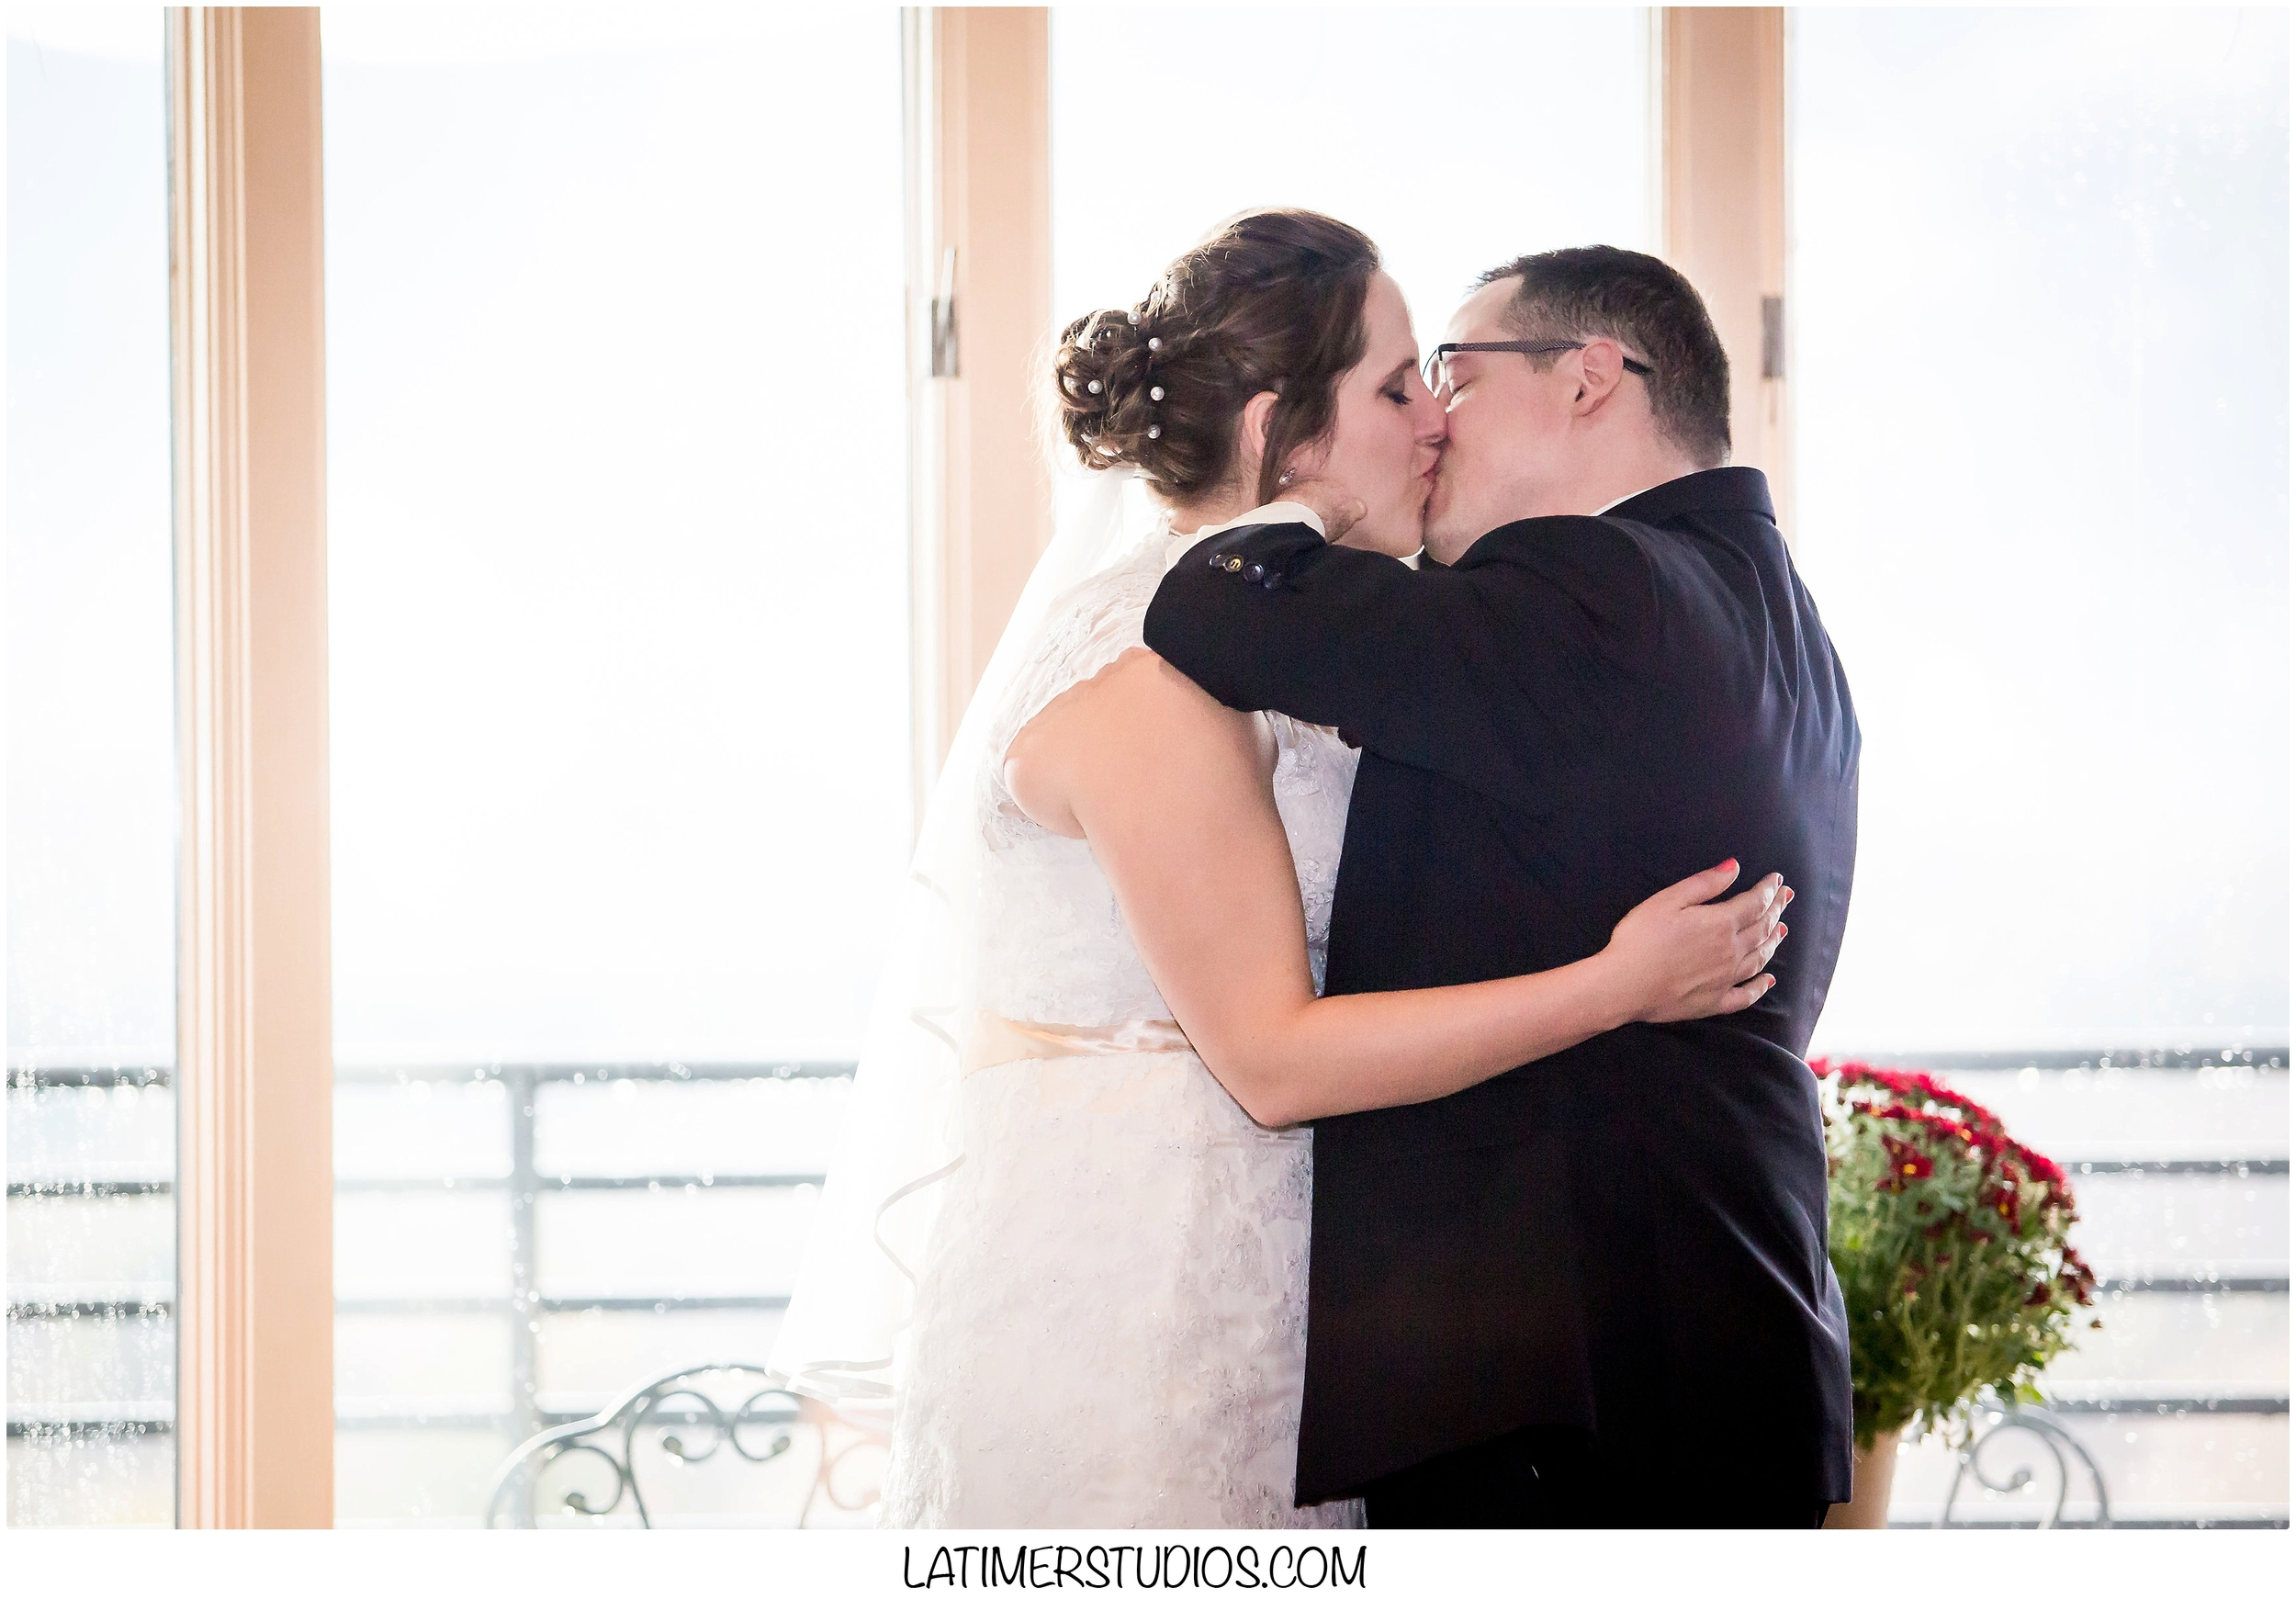 Latimer Studios Photography capturing the first kiss at Red Jacket Mountain View in North Conway, NH